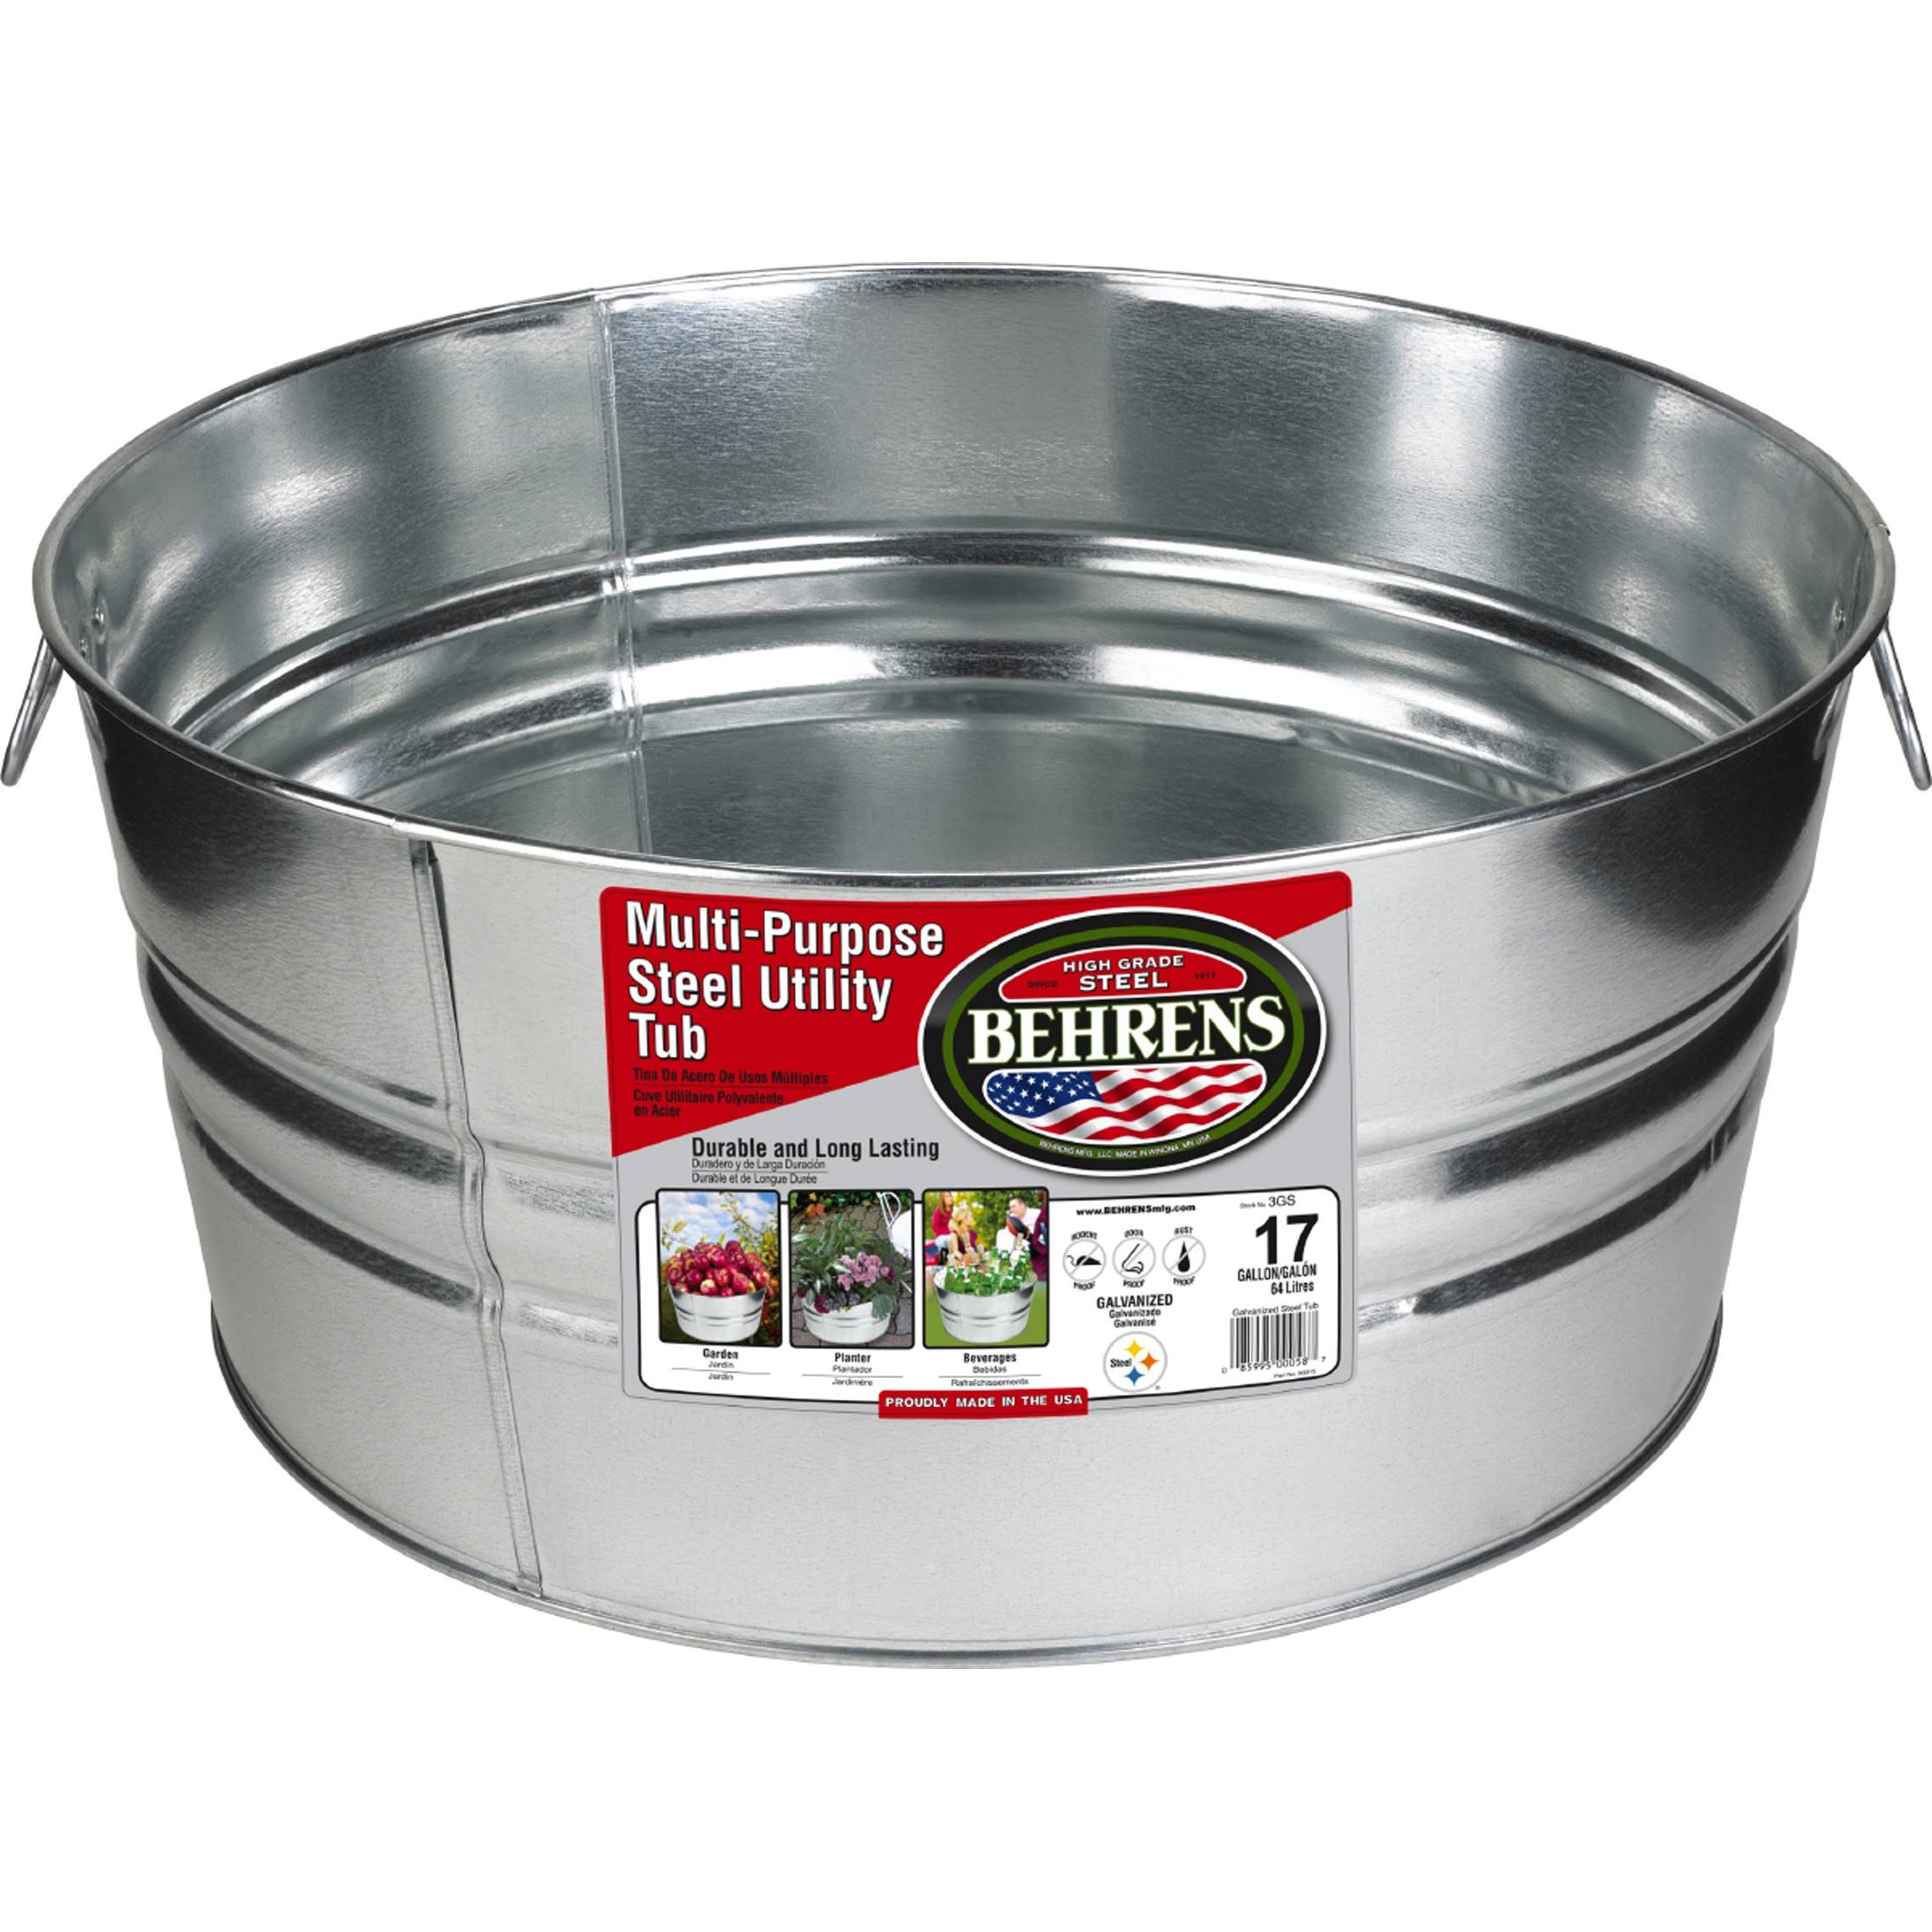 Behrens 3GS Steel Tub - Round, Galvanized, 17gal